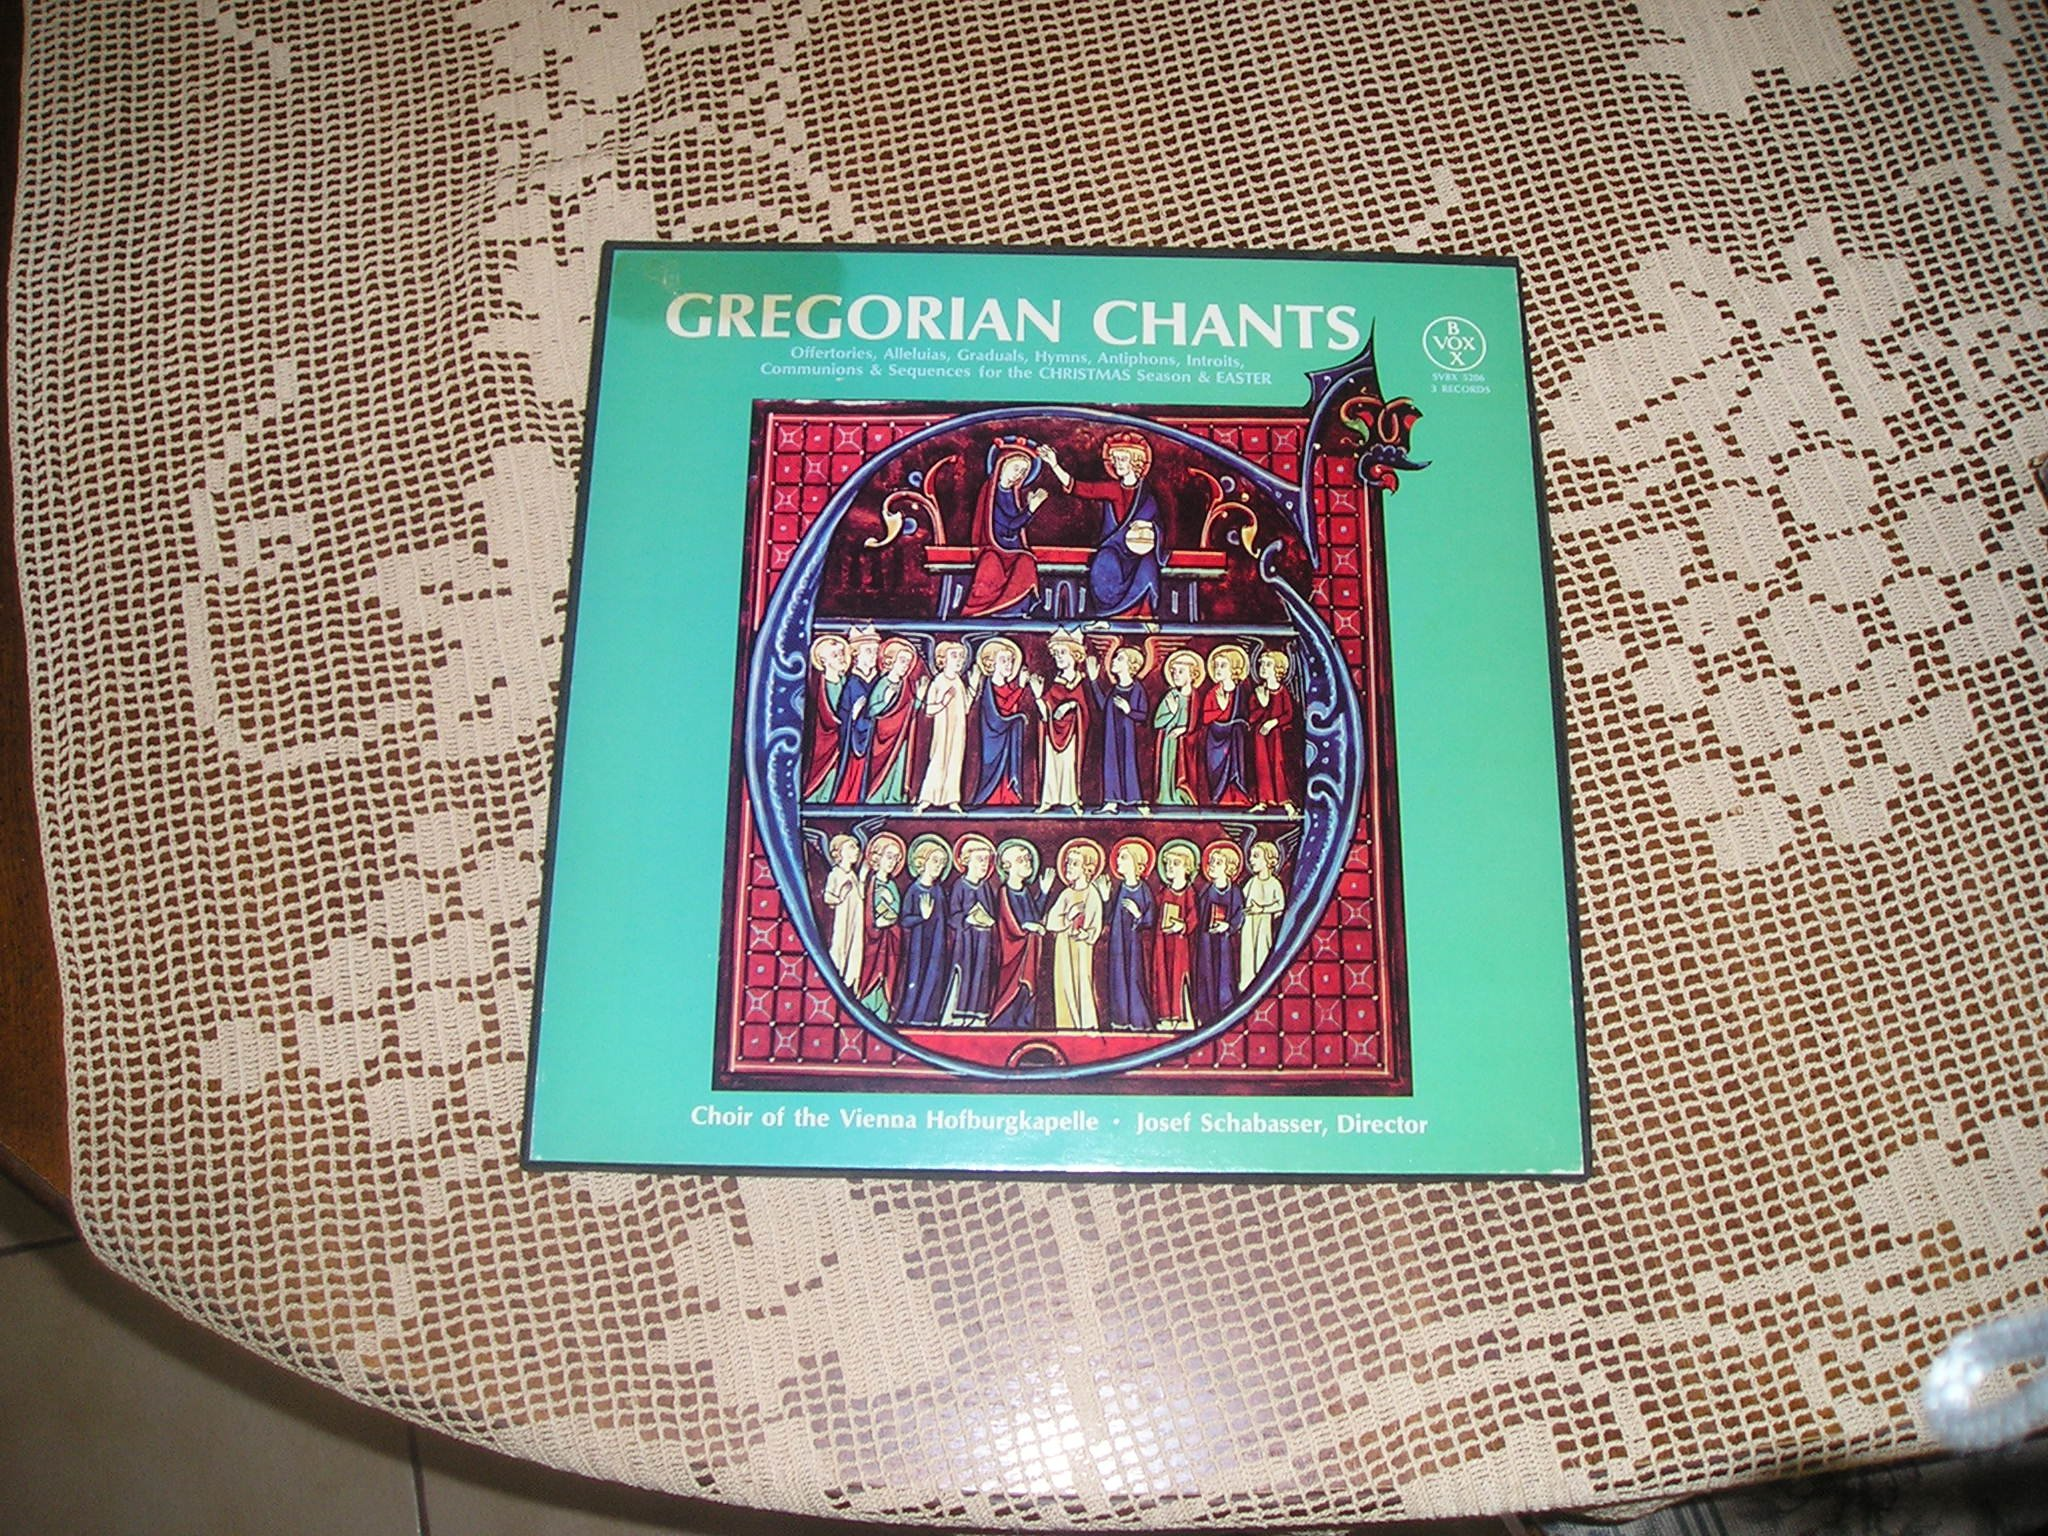 Gregorian Chants: Offertories, Alleluias, Graduals, Hymns, Antiphons, Introits, Communions & Sequences for the Christmas Season and Easter (3 LP) by Vox Box